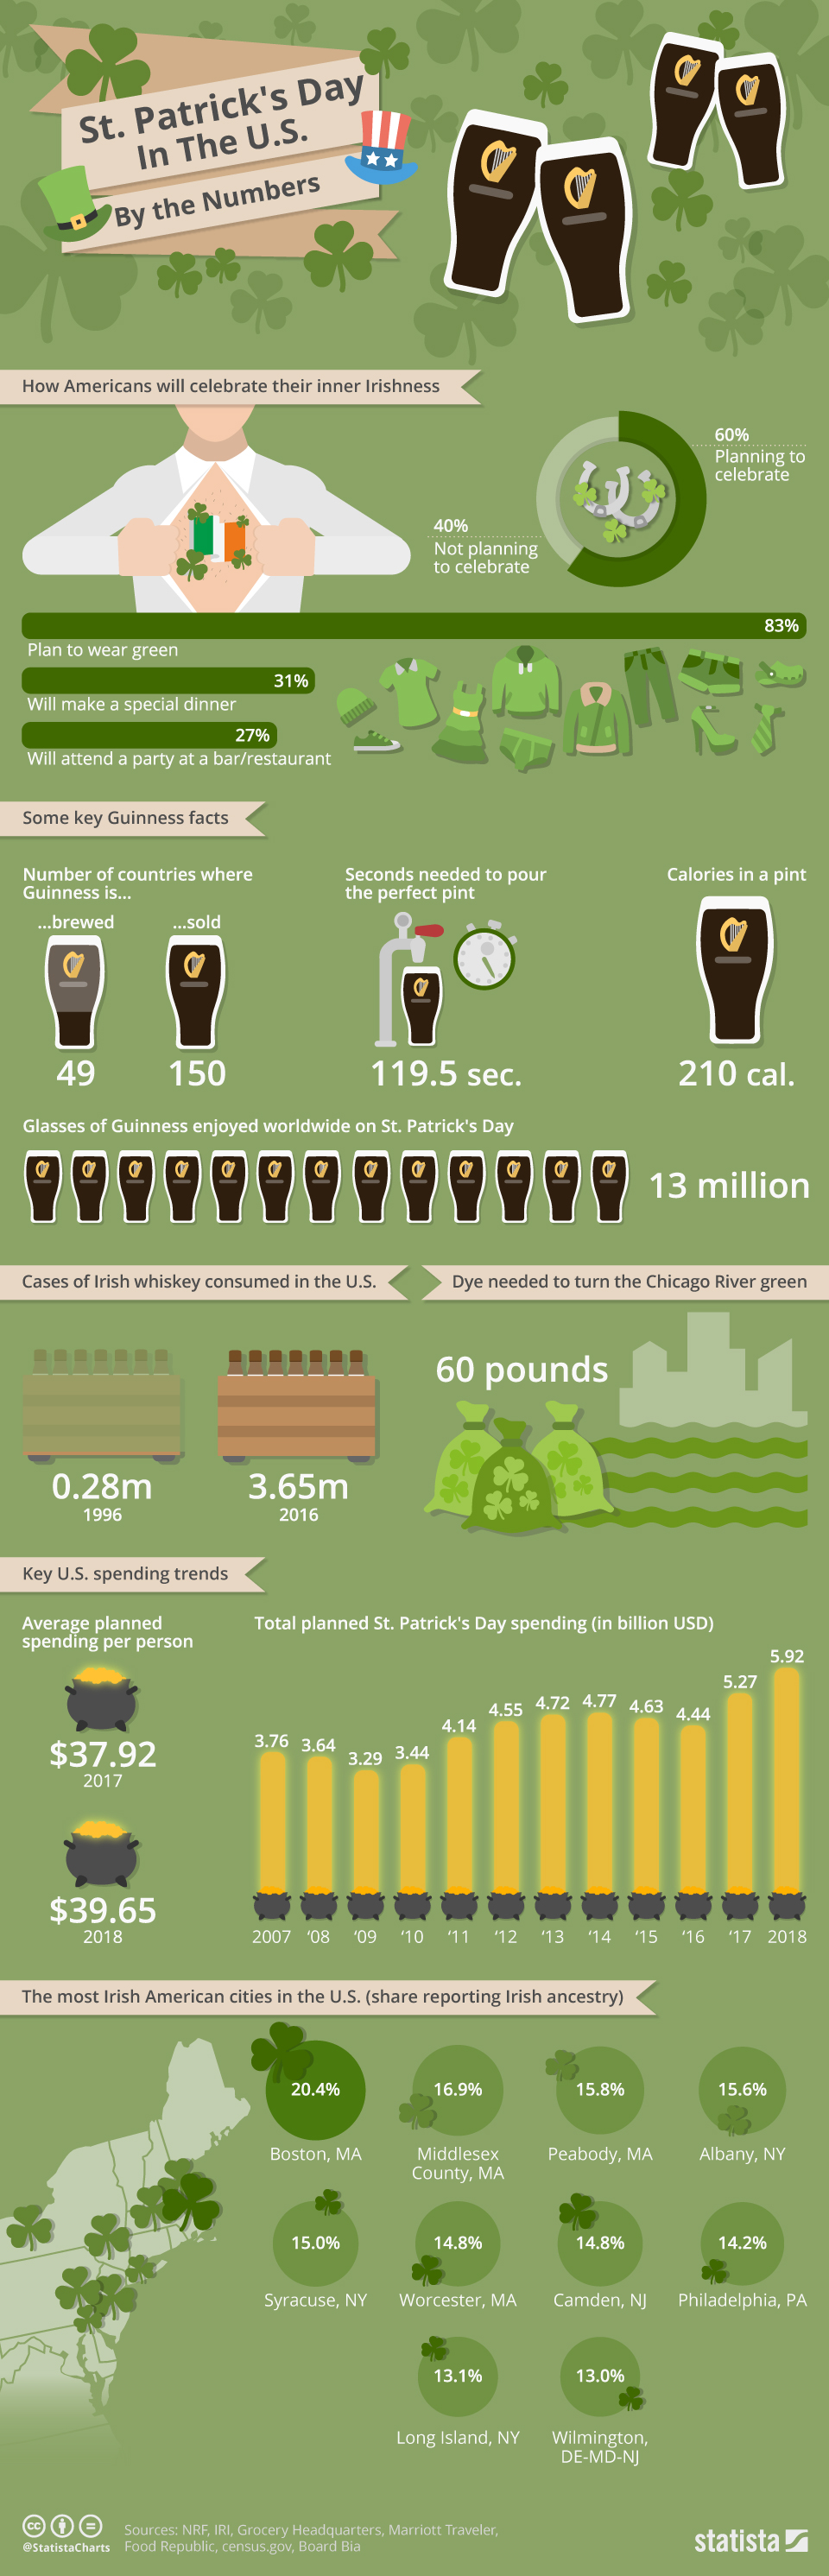 Infographic looks at the popularity of St Patrick's Day in the US